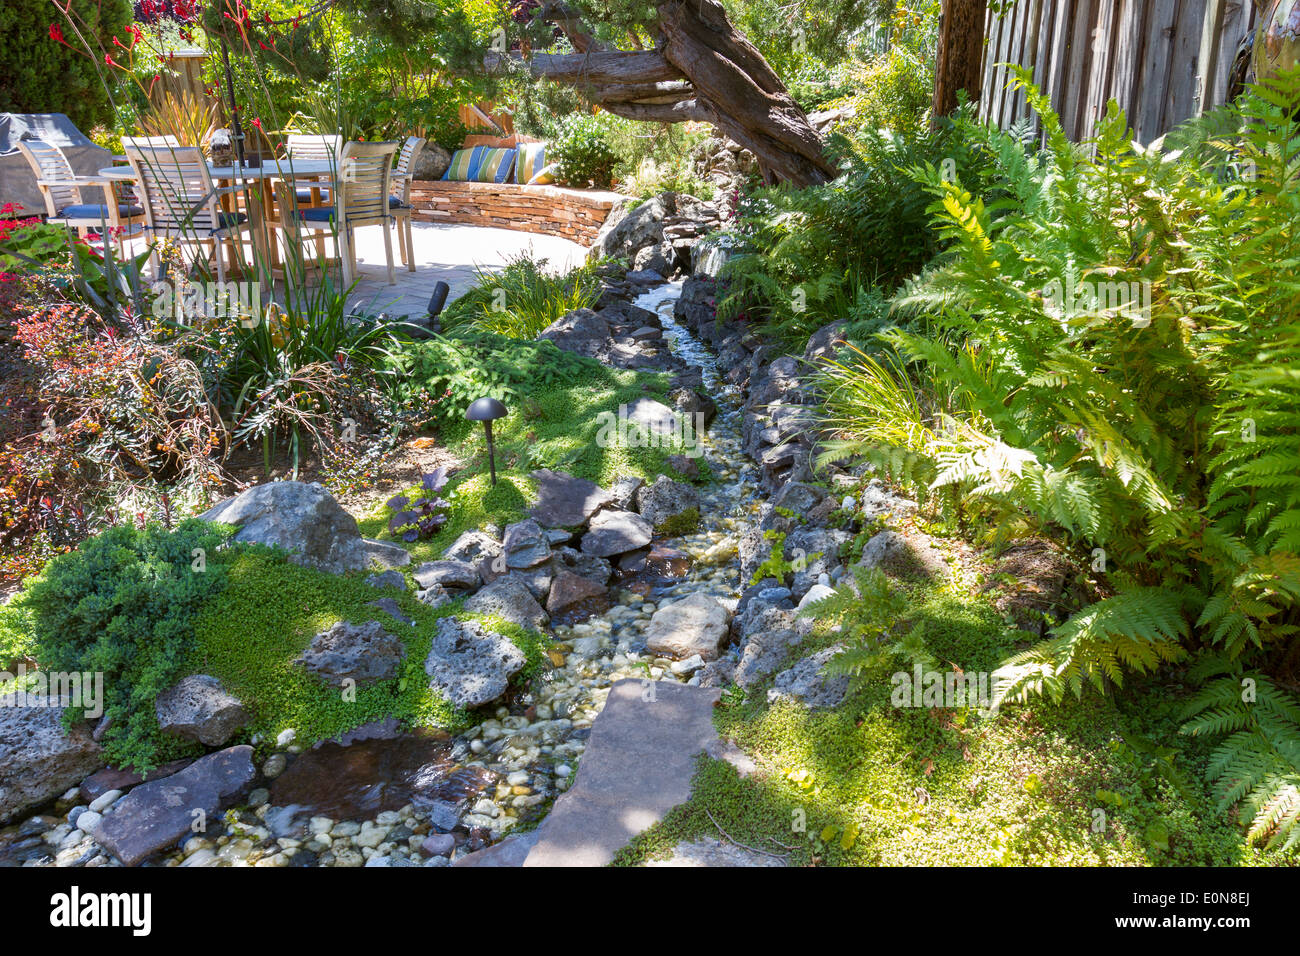 Water feature stream with lush foliage in a beautiful landscaped backyard with patio dining - Stock Image